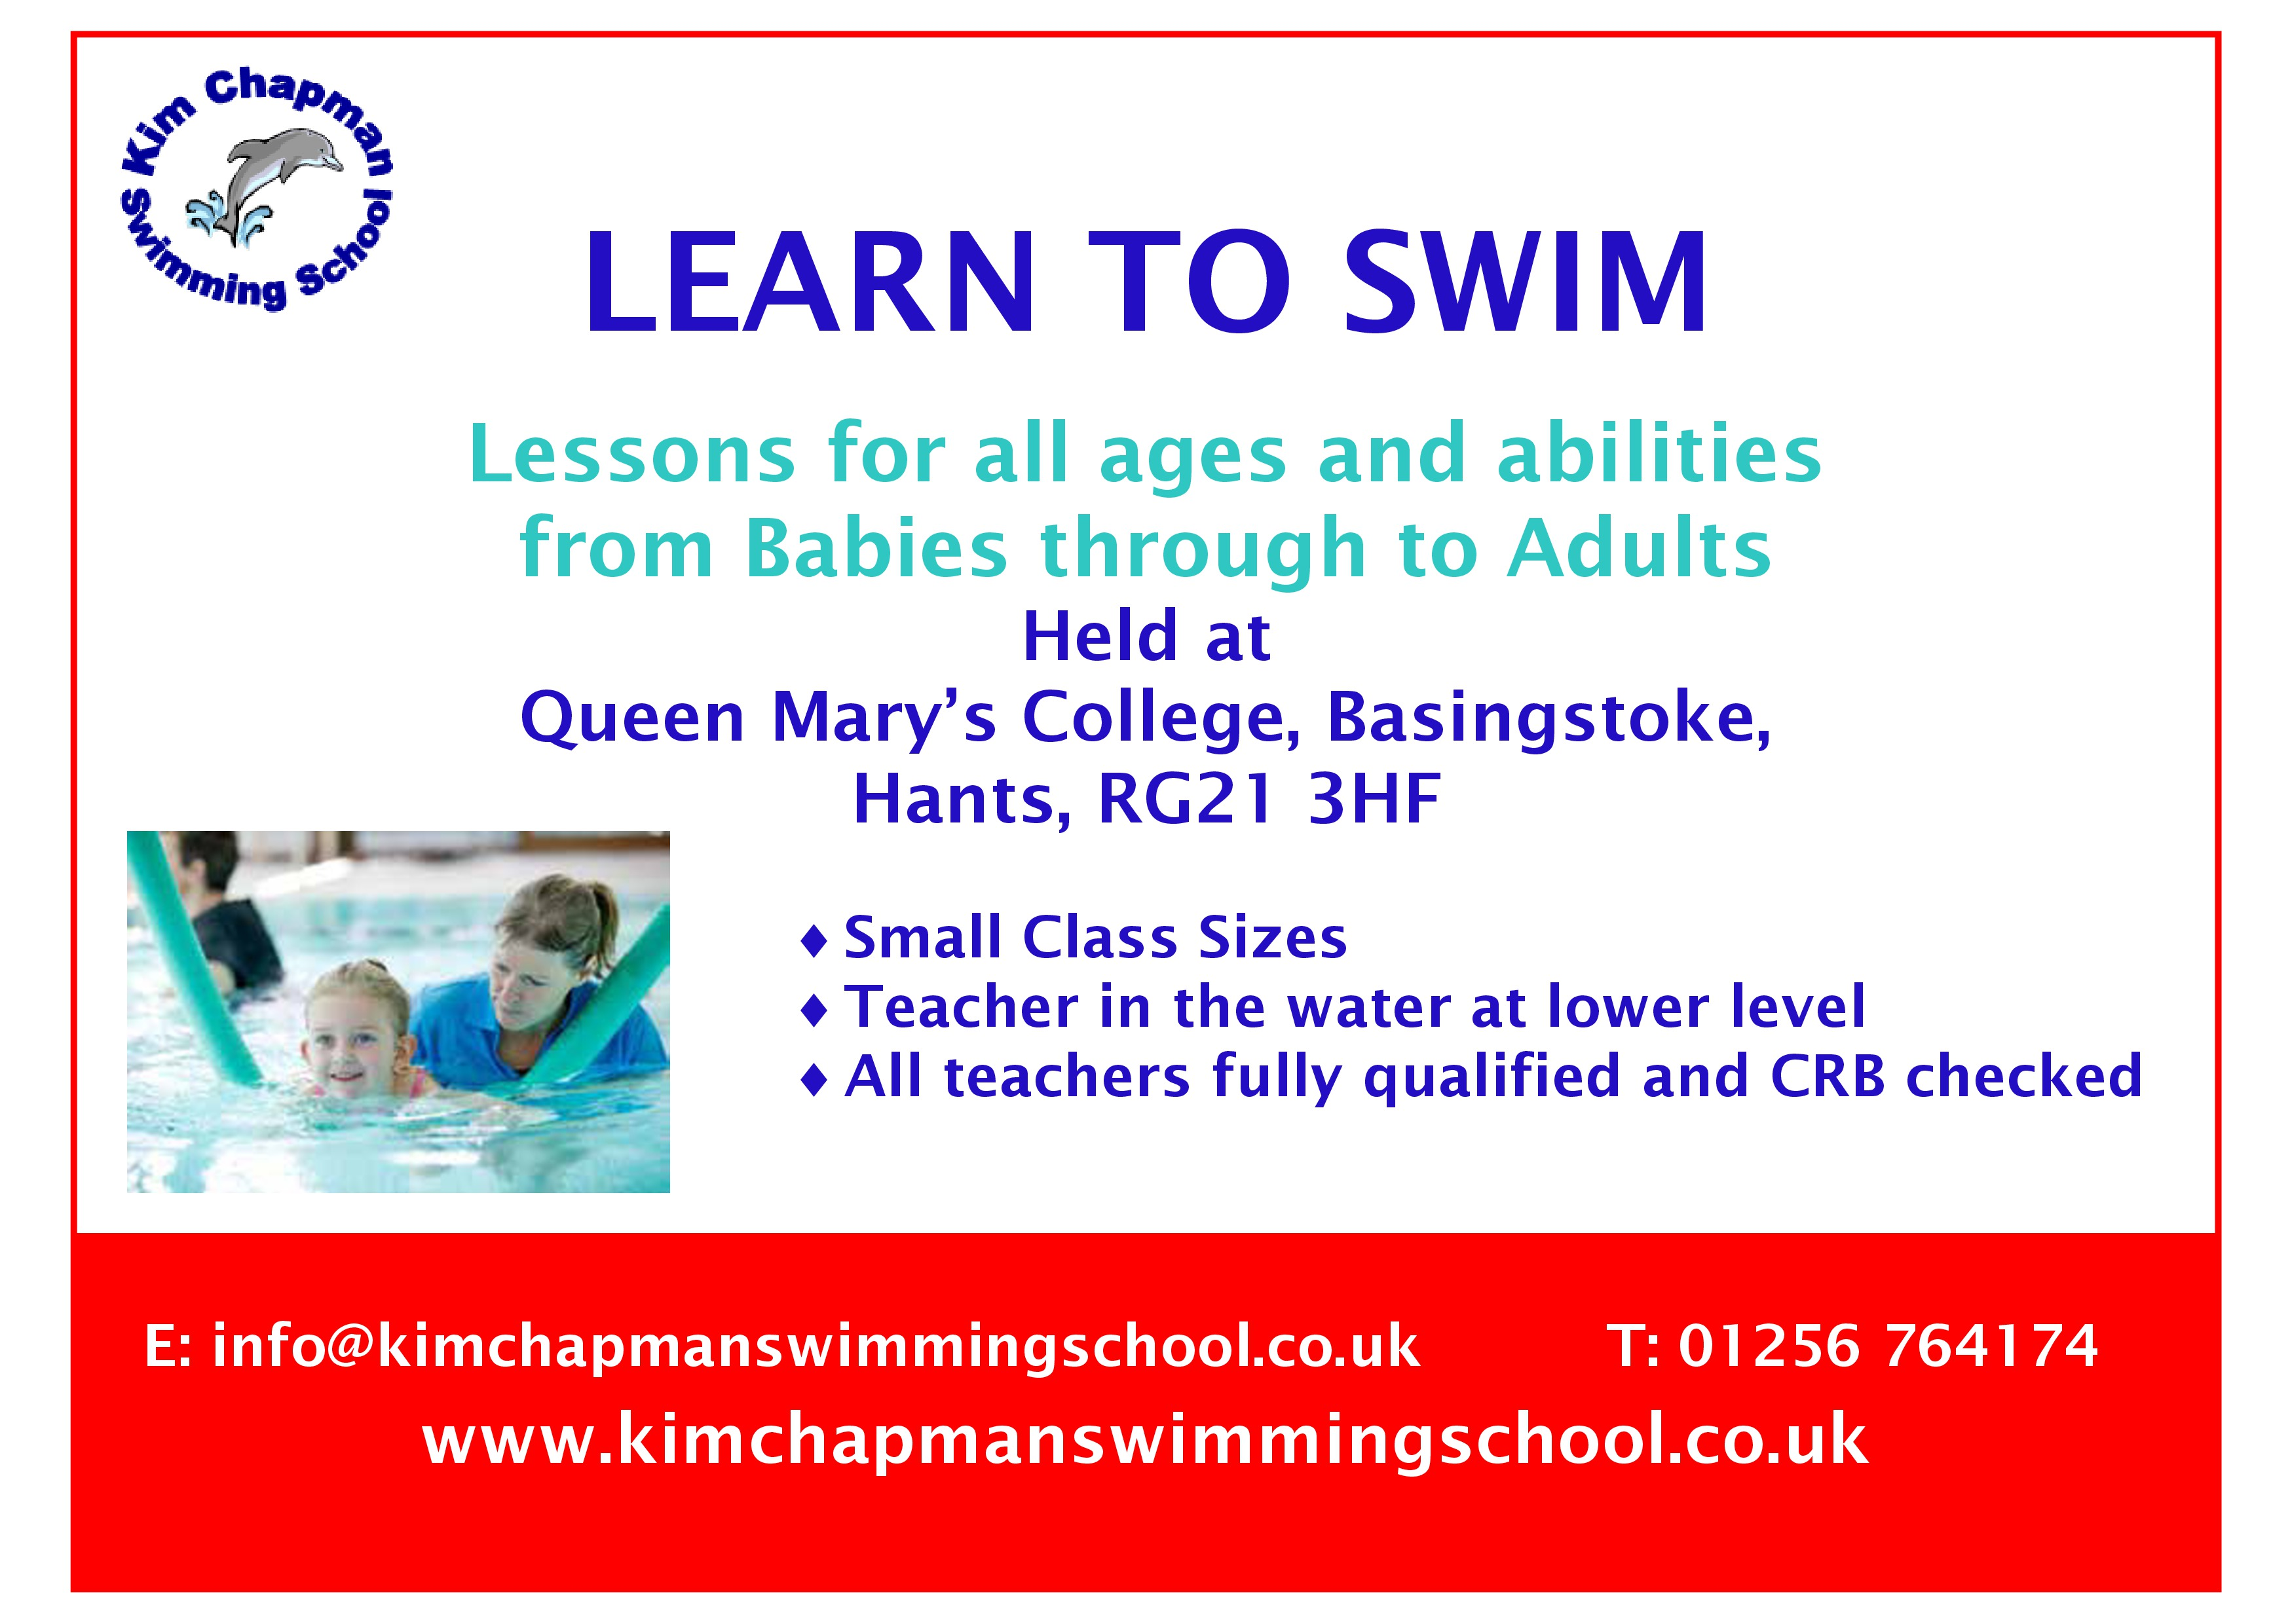 Kim Chapman Swimming School advert